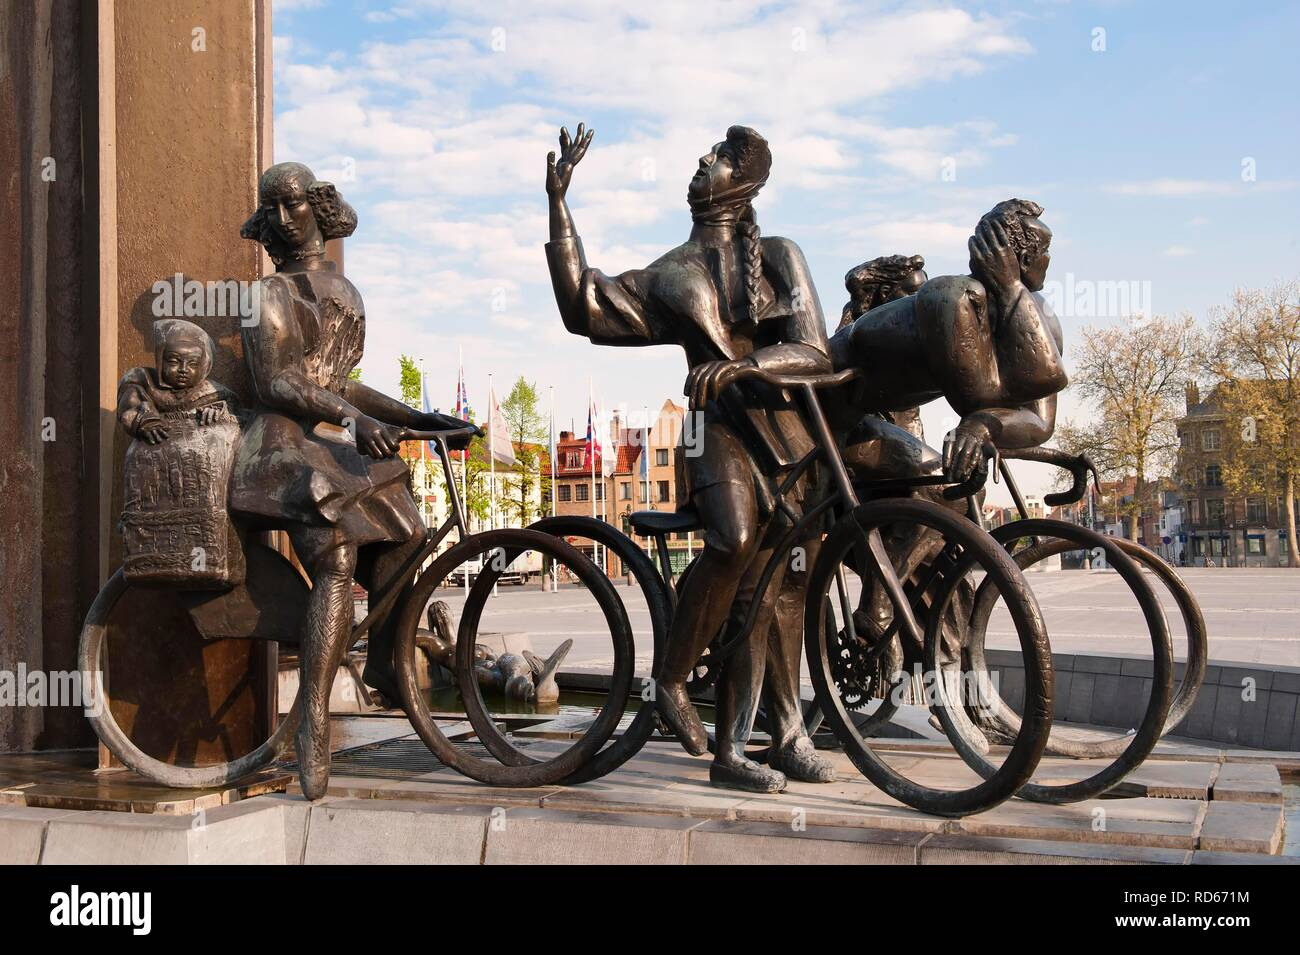 Statues at T'Zand Square, Bruges, Belgium, Europe - Stock Image